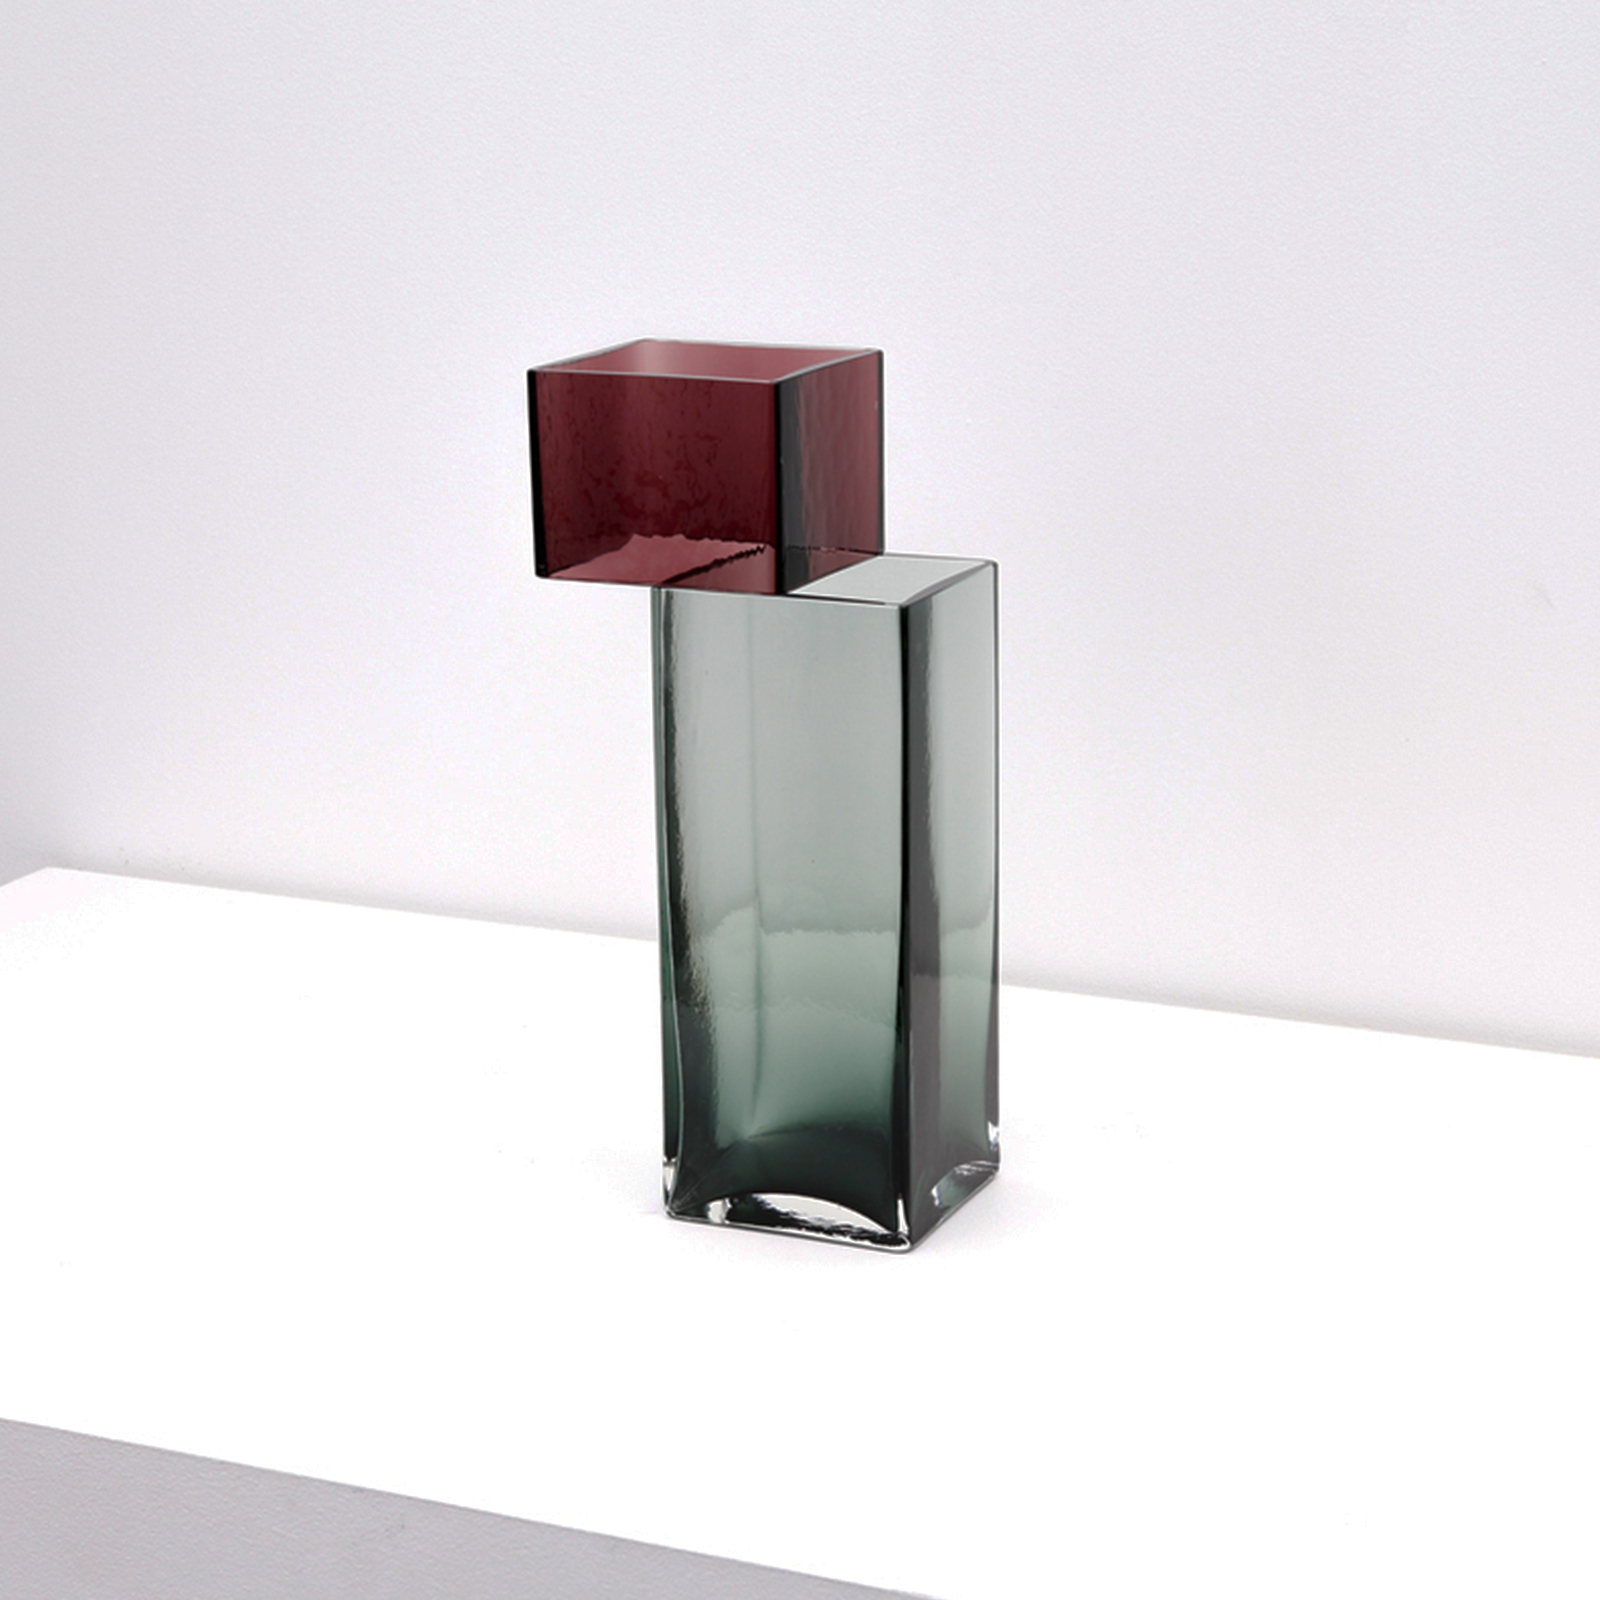 Graft Vase G In Burgundy And Fog Hand Blown Glass By Liam Fleming 2